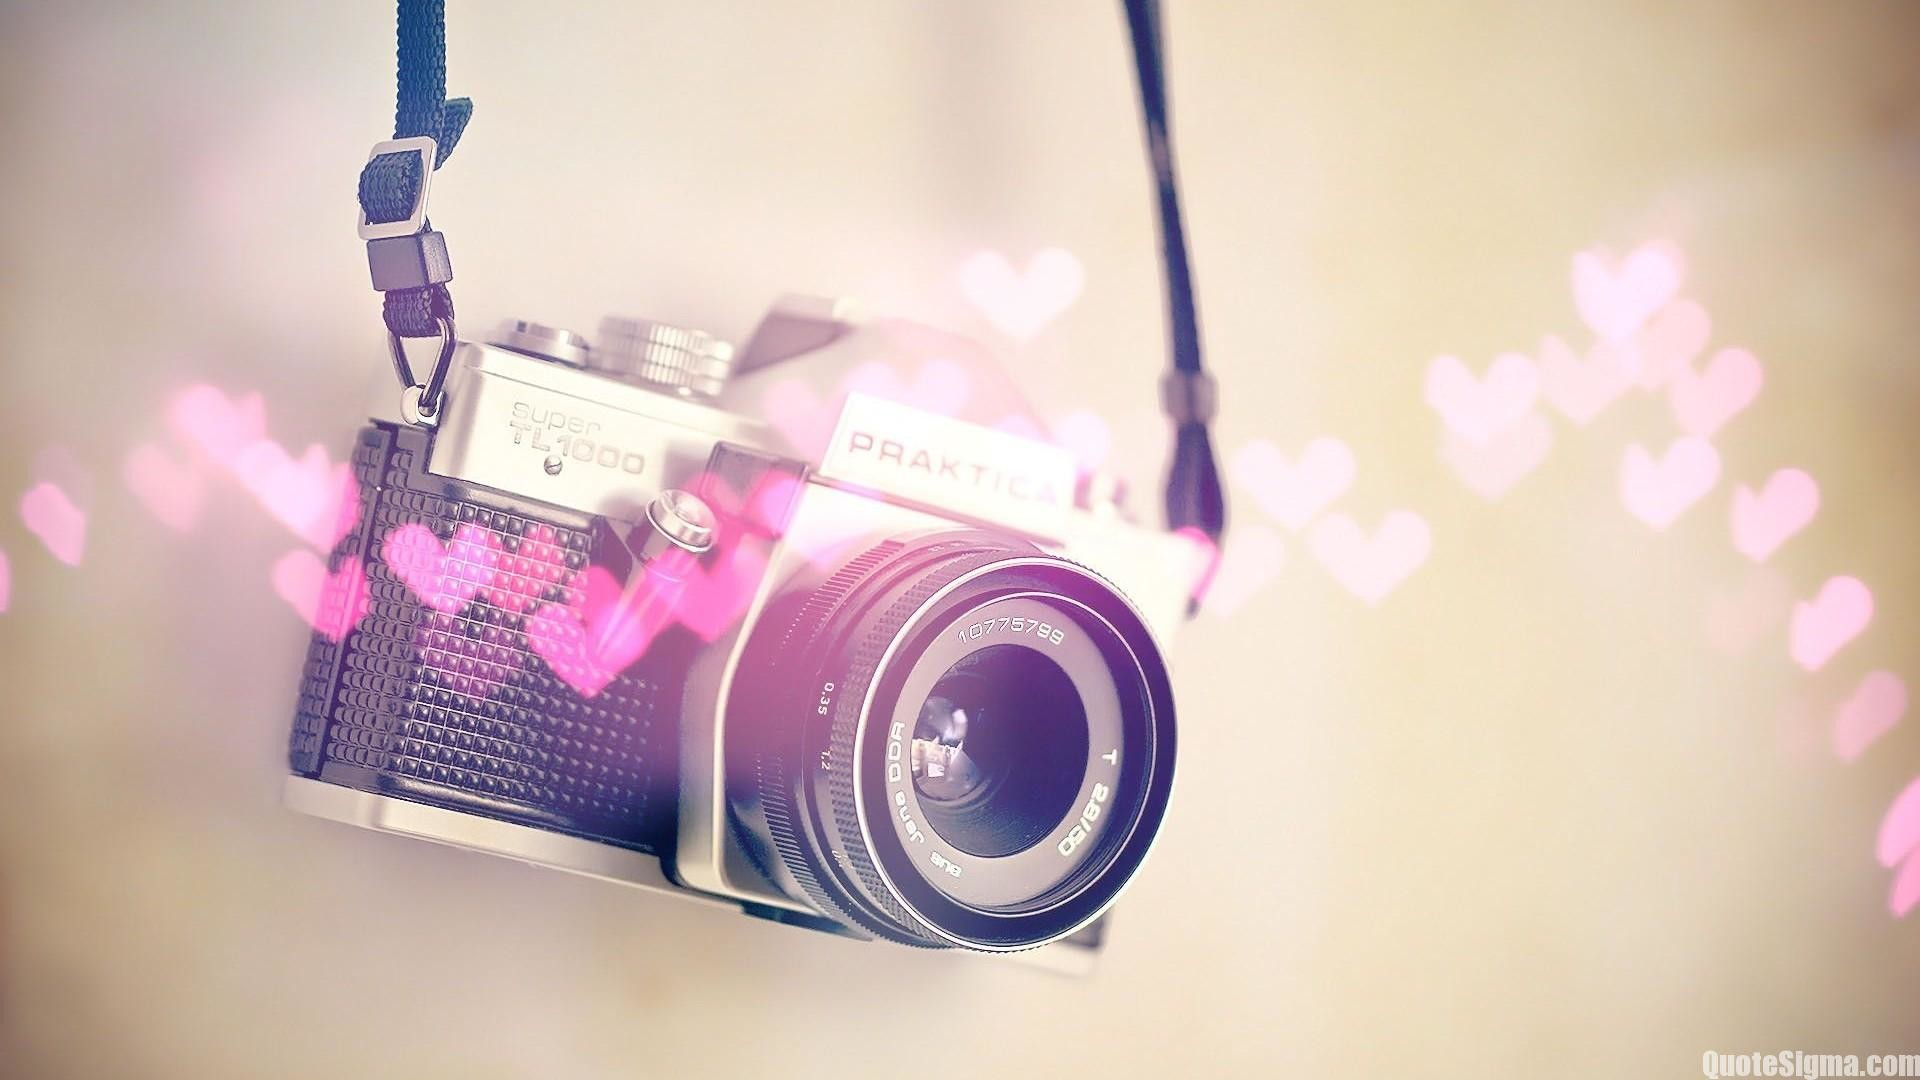 Cute girly wallpapers for laptop 64 images - Cute wallpapers for a laptop ...